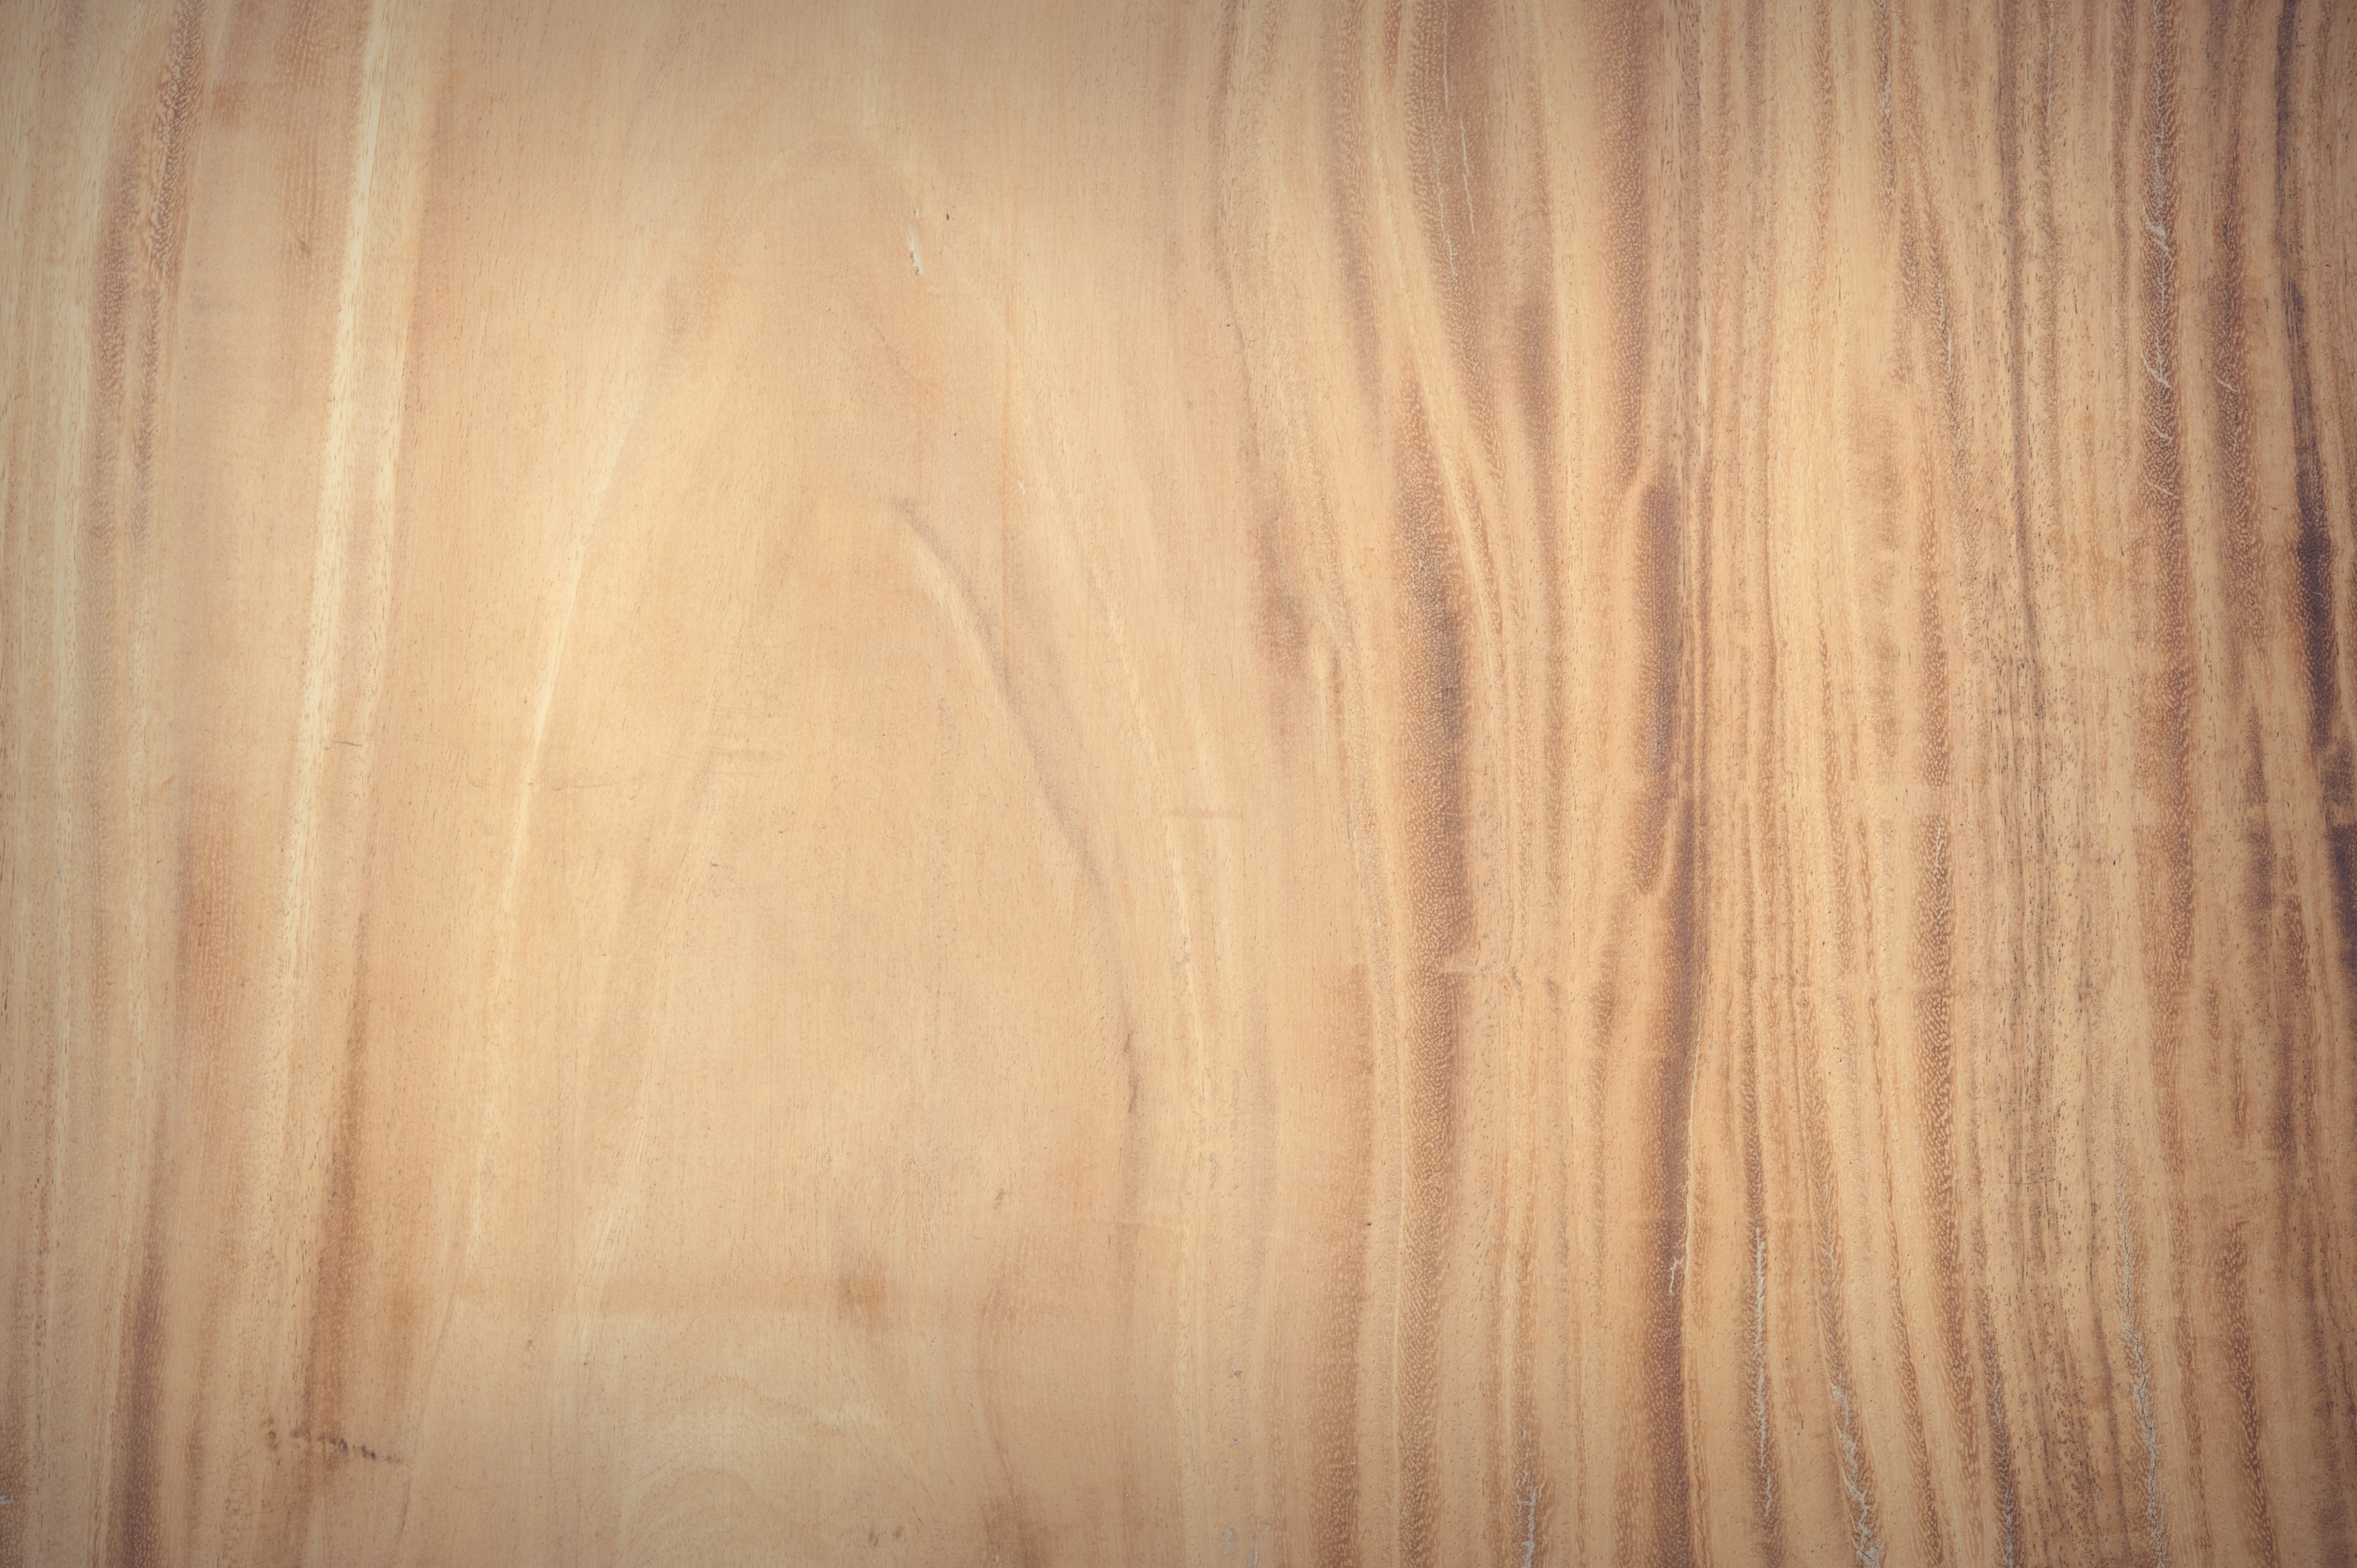 Brown Wooden Surface 183 Free Stock Photo